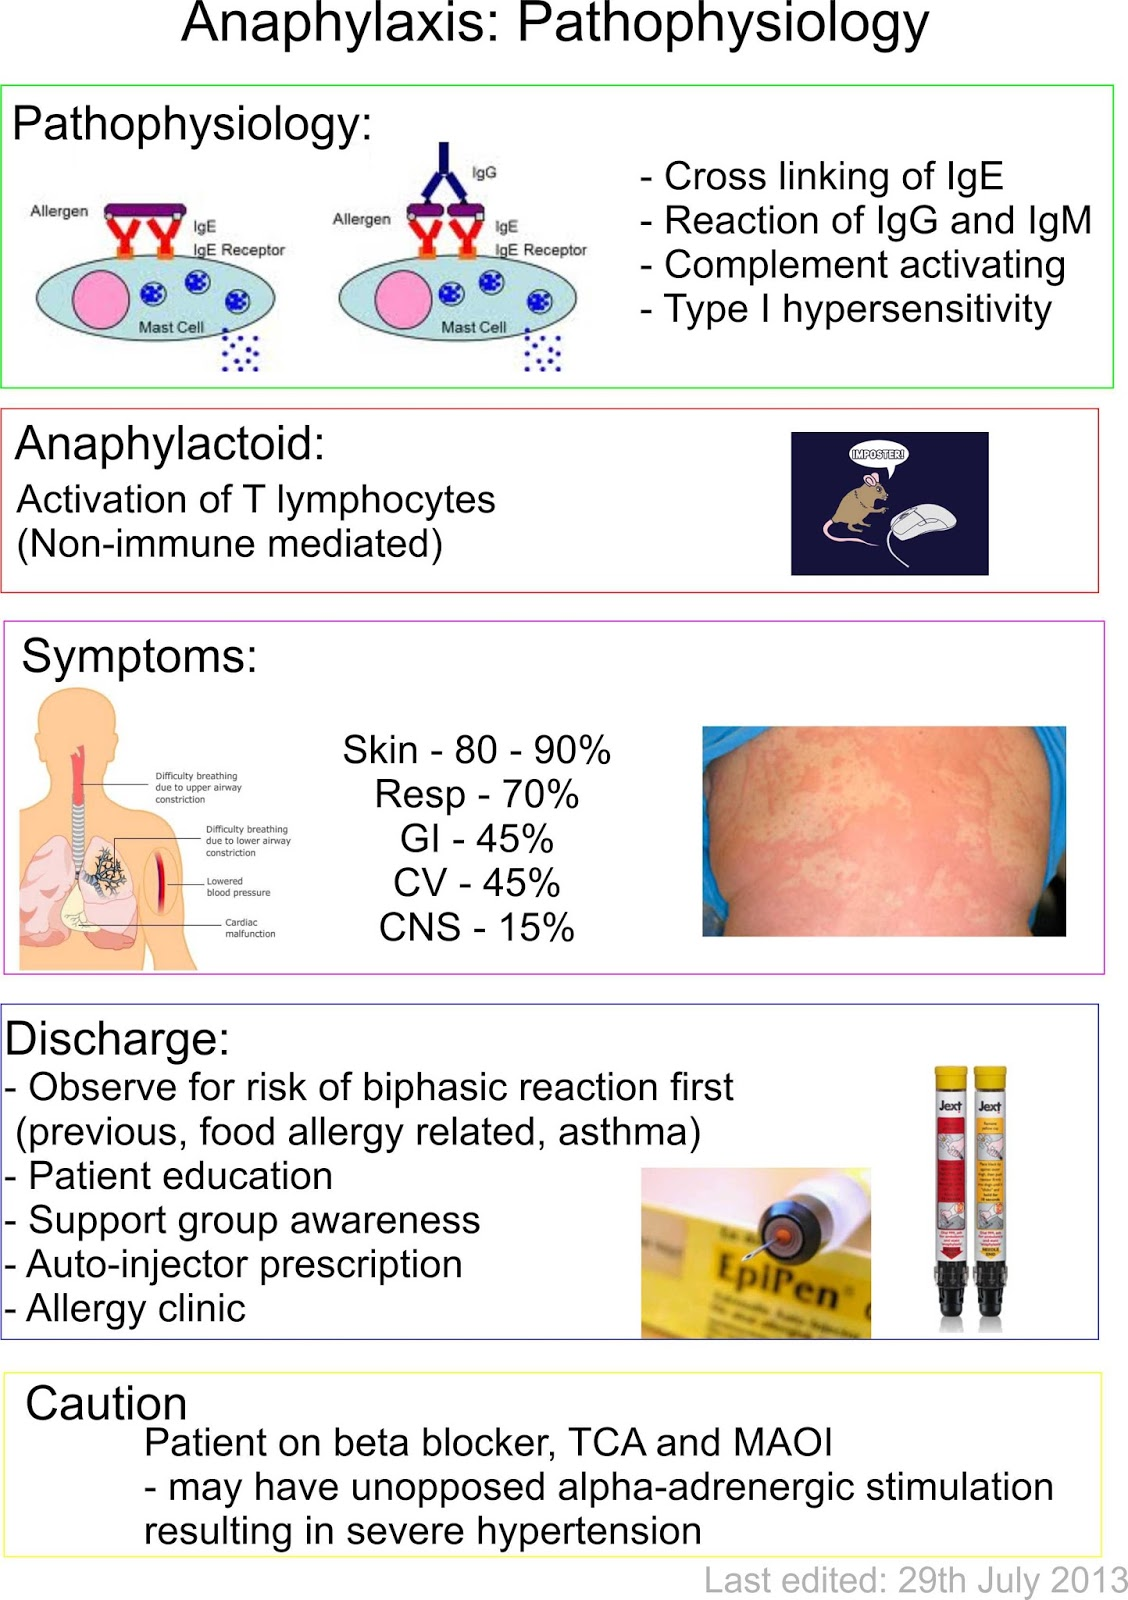 Anaphylaxis Pathophysiology Summary